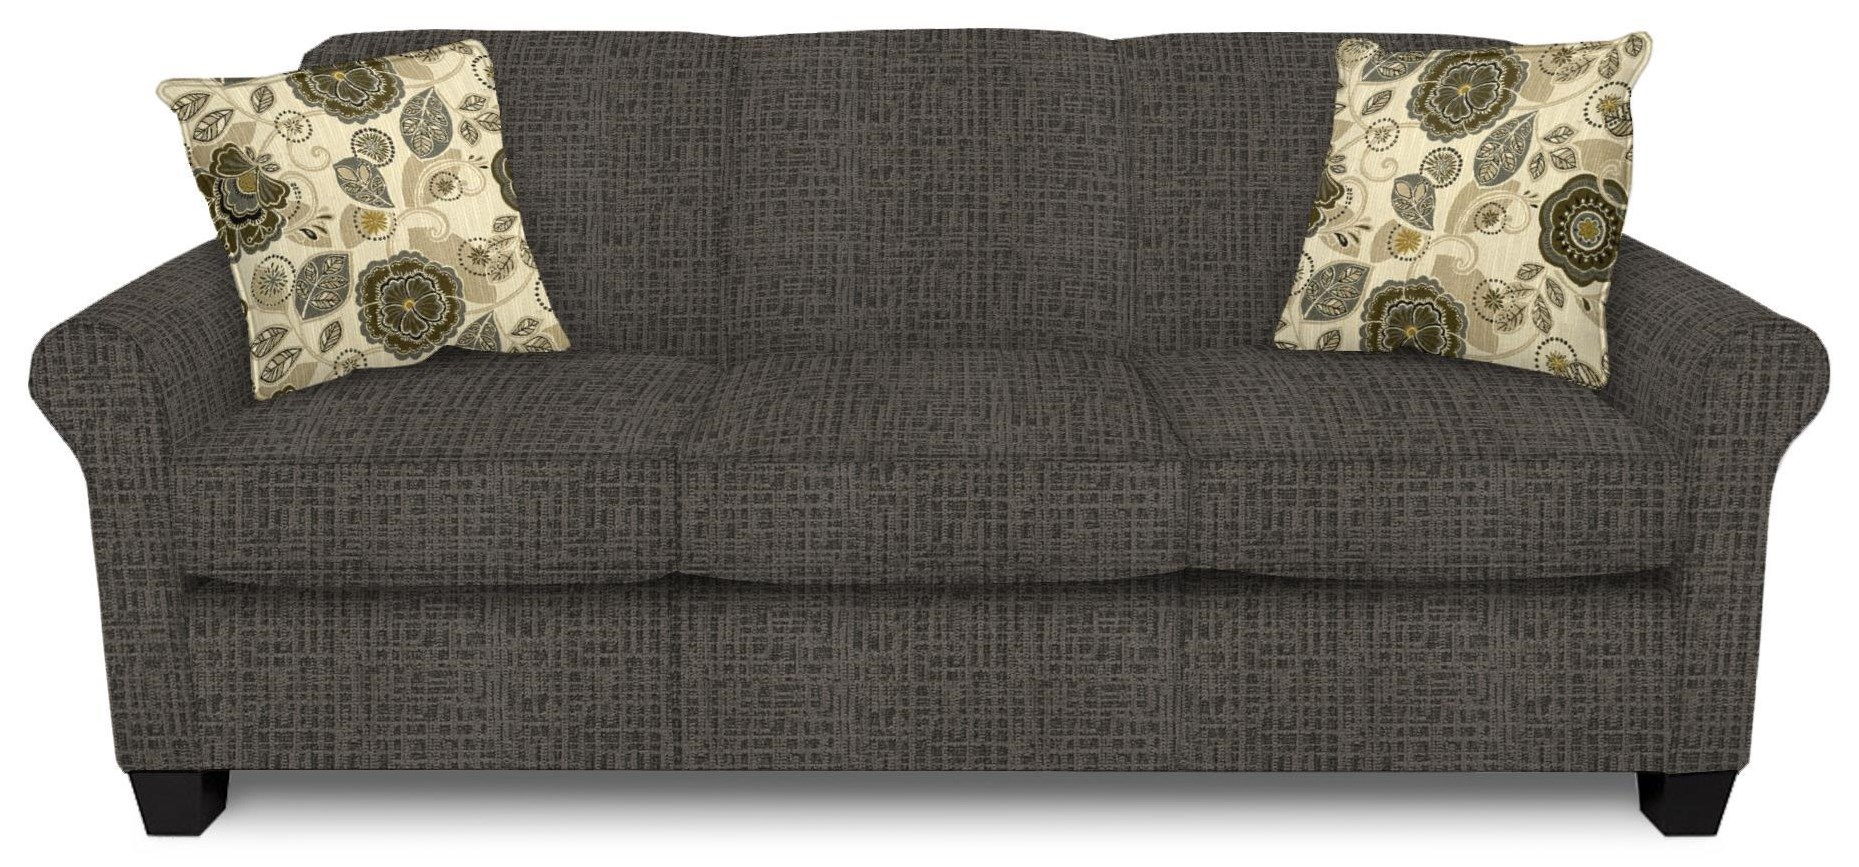 Casual Rolled Arm Sofa With Accent Pillows